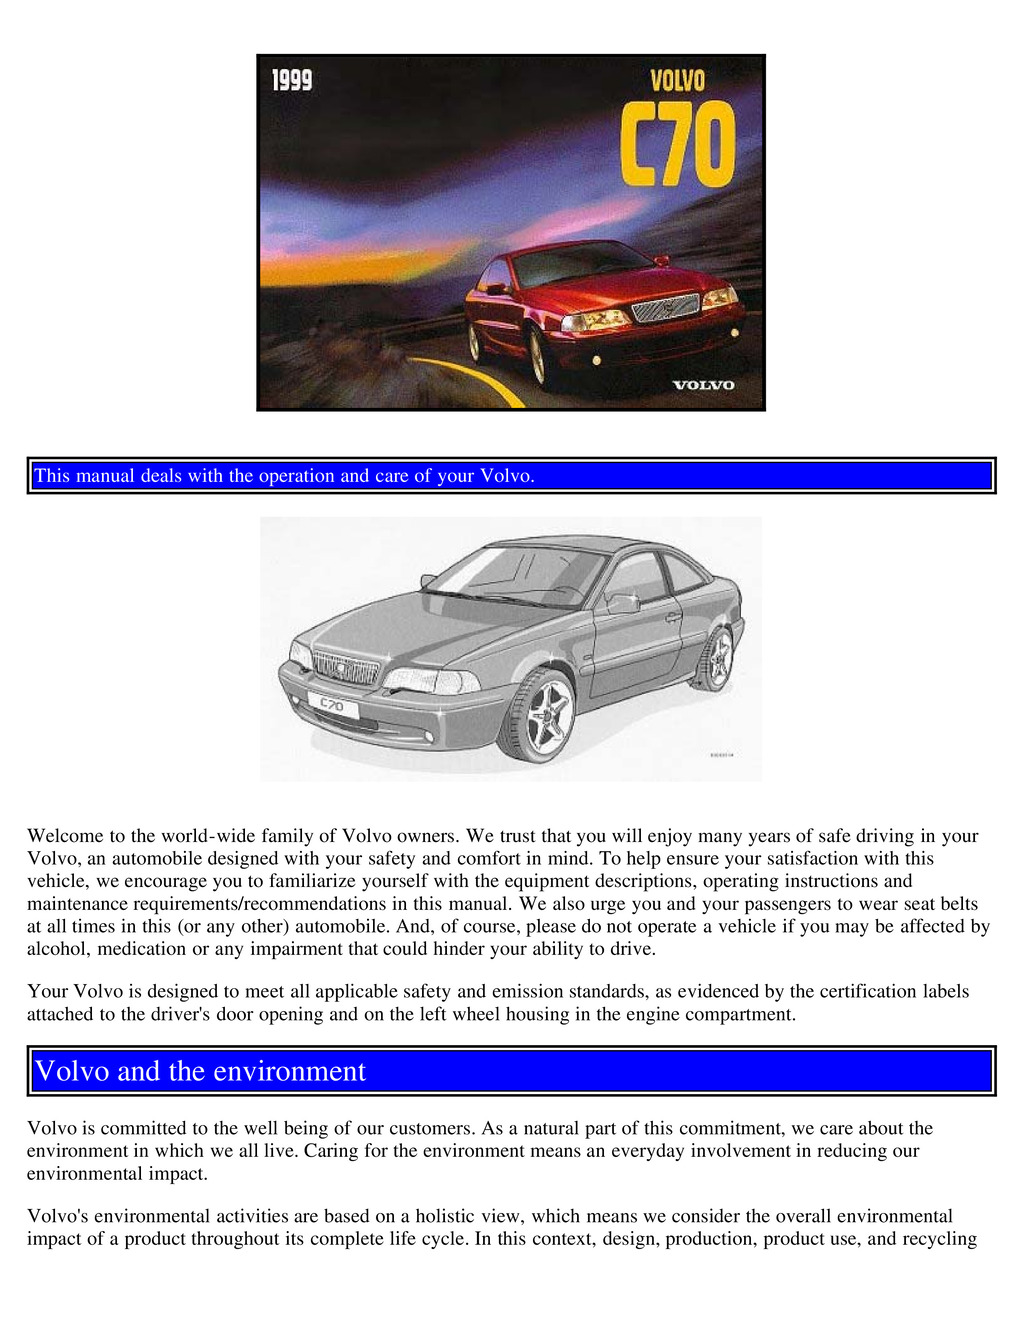 1999 Volvo C70 owners manual